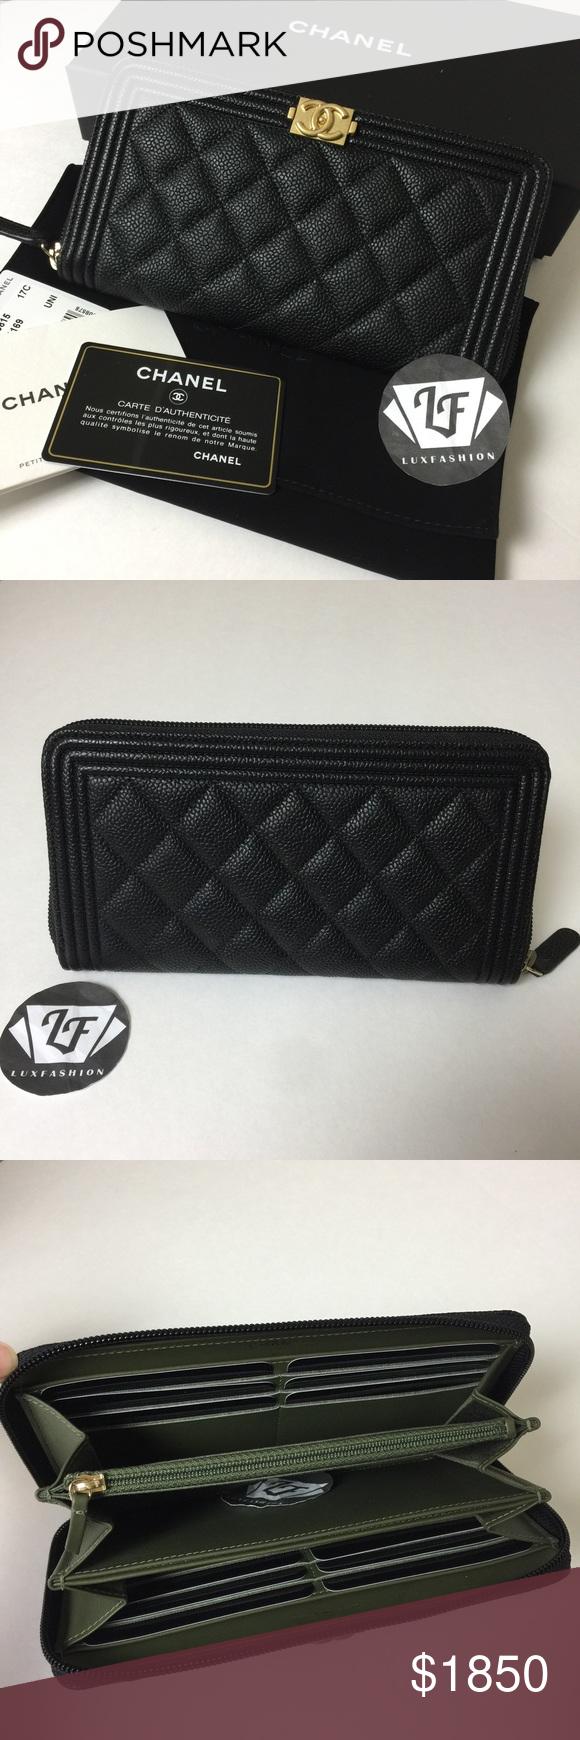 f91b3a65c751eb Chanel Boy Long Zip Around Wallet Black Caviar GH Brand new and Authentic.  Sold out in stores! Full set with box, dust pouch, tag, care booklet and ...